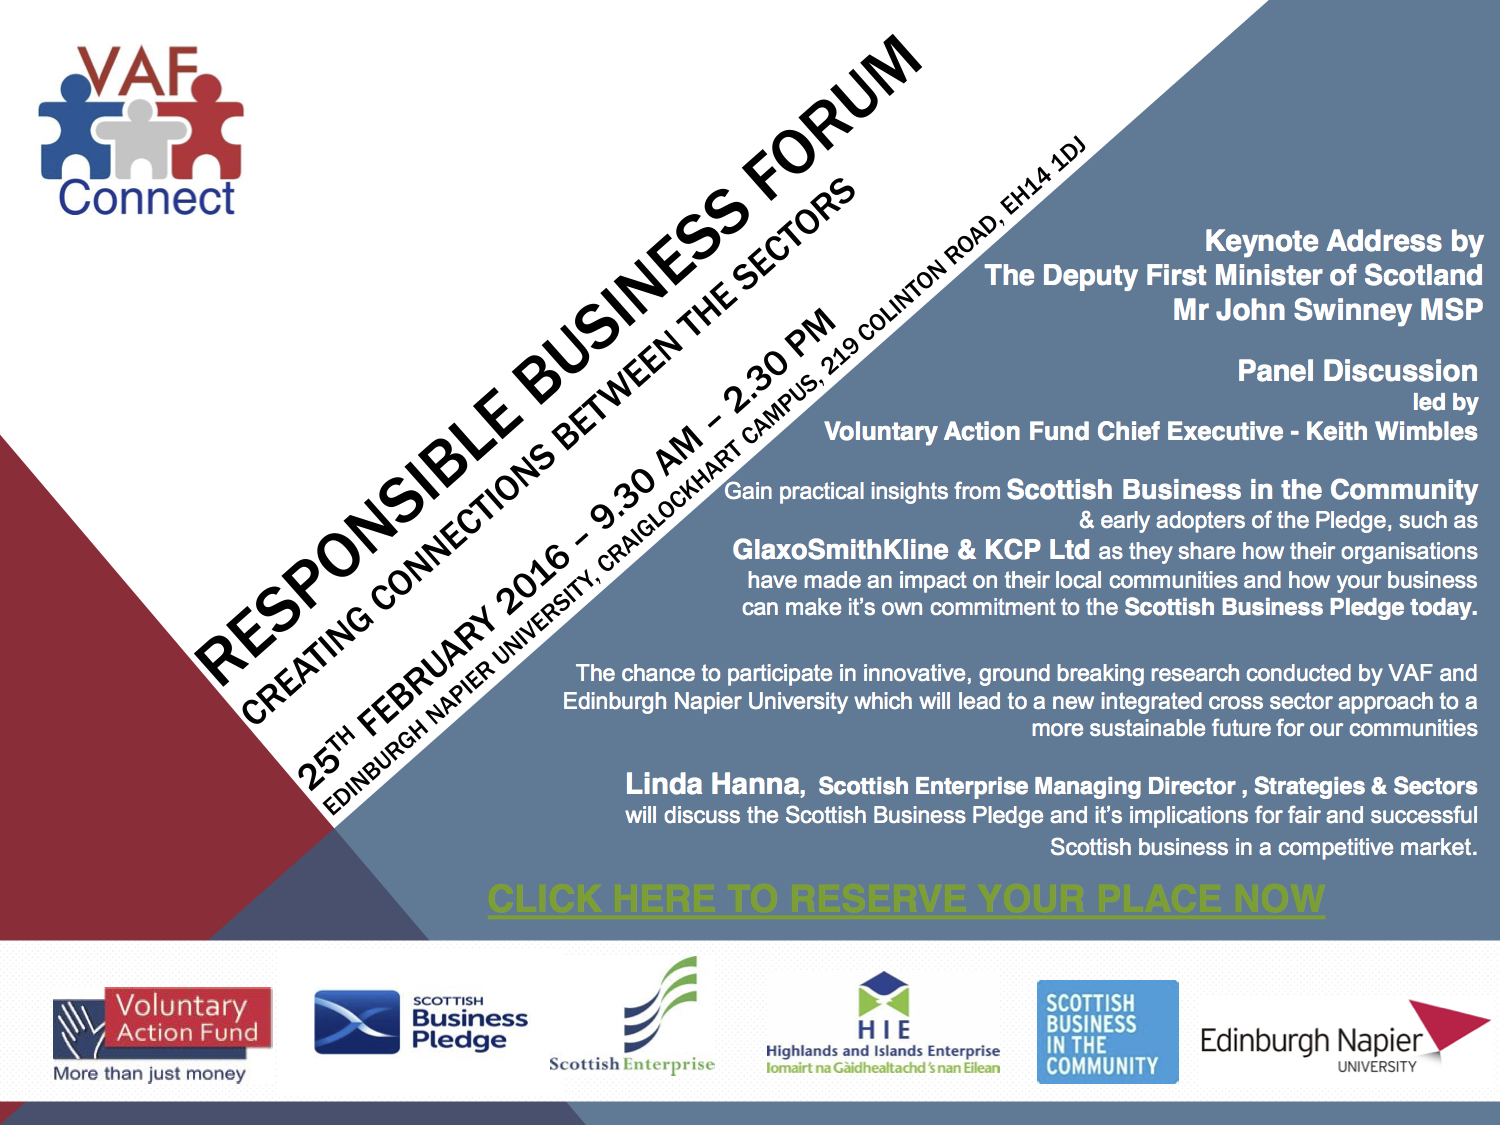 RESPONSIBLE BUSINESS FORUM Leaflet - 25 Feb 2016